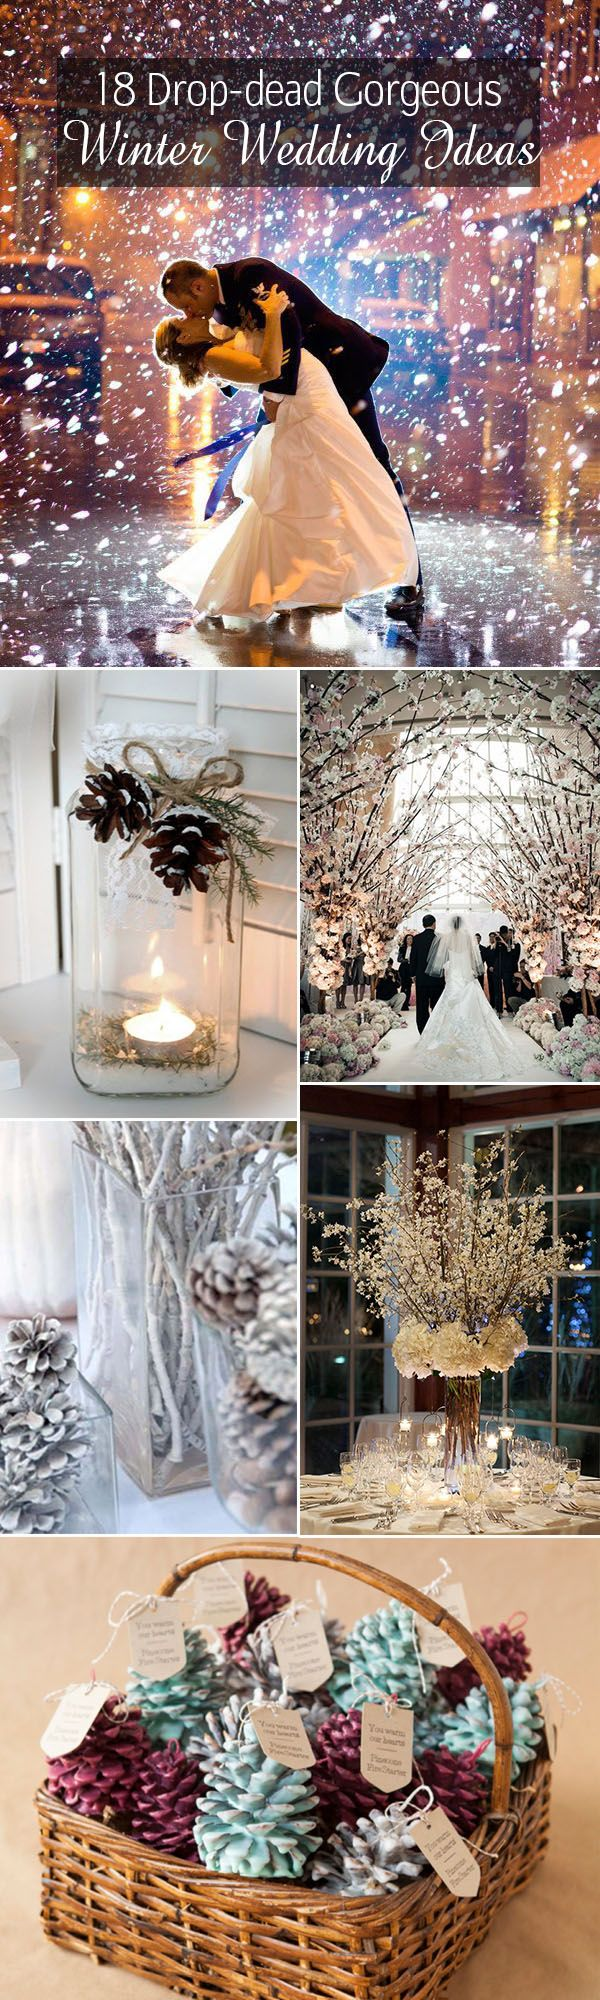 top 18 winter wedding ideas for your big day-- Winter wedding ideas